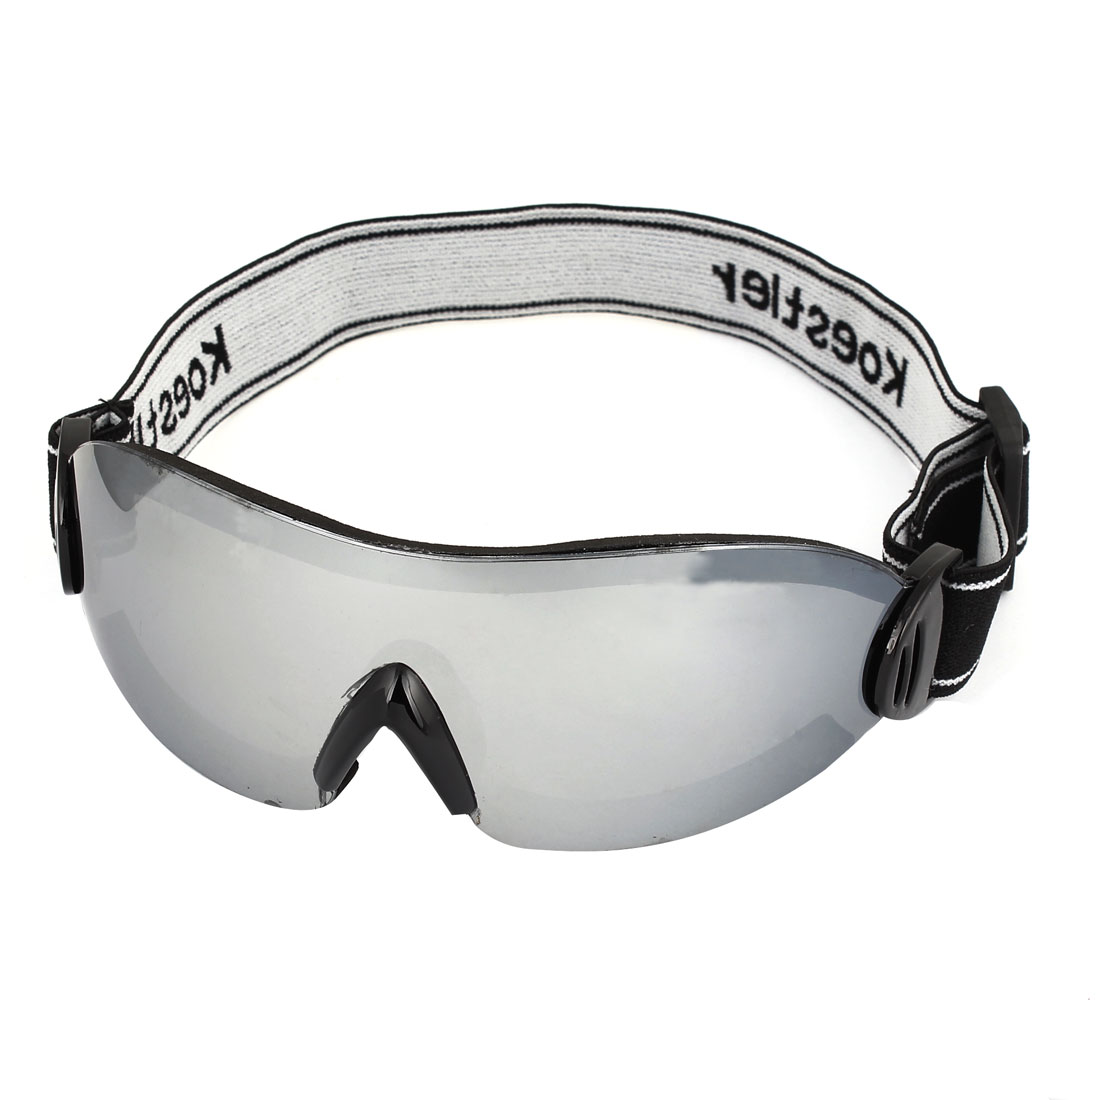 Unisex Elastic Strap Rimless Clear Lens Motorbike Snowboarding Goggles Glasses